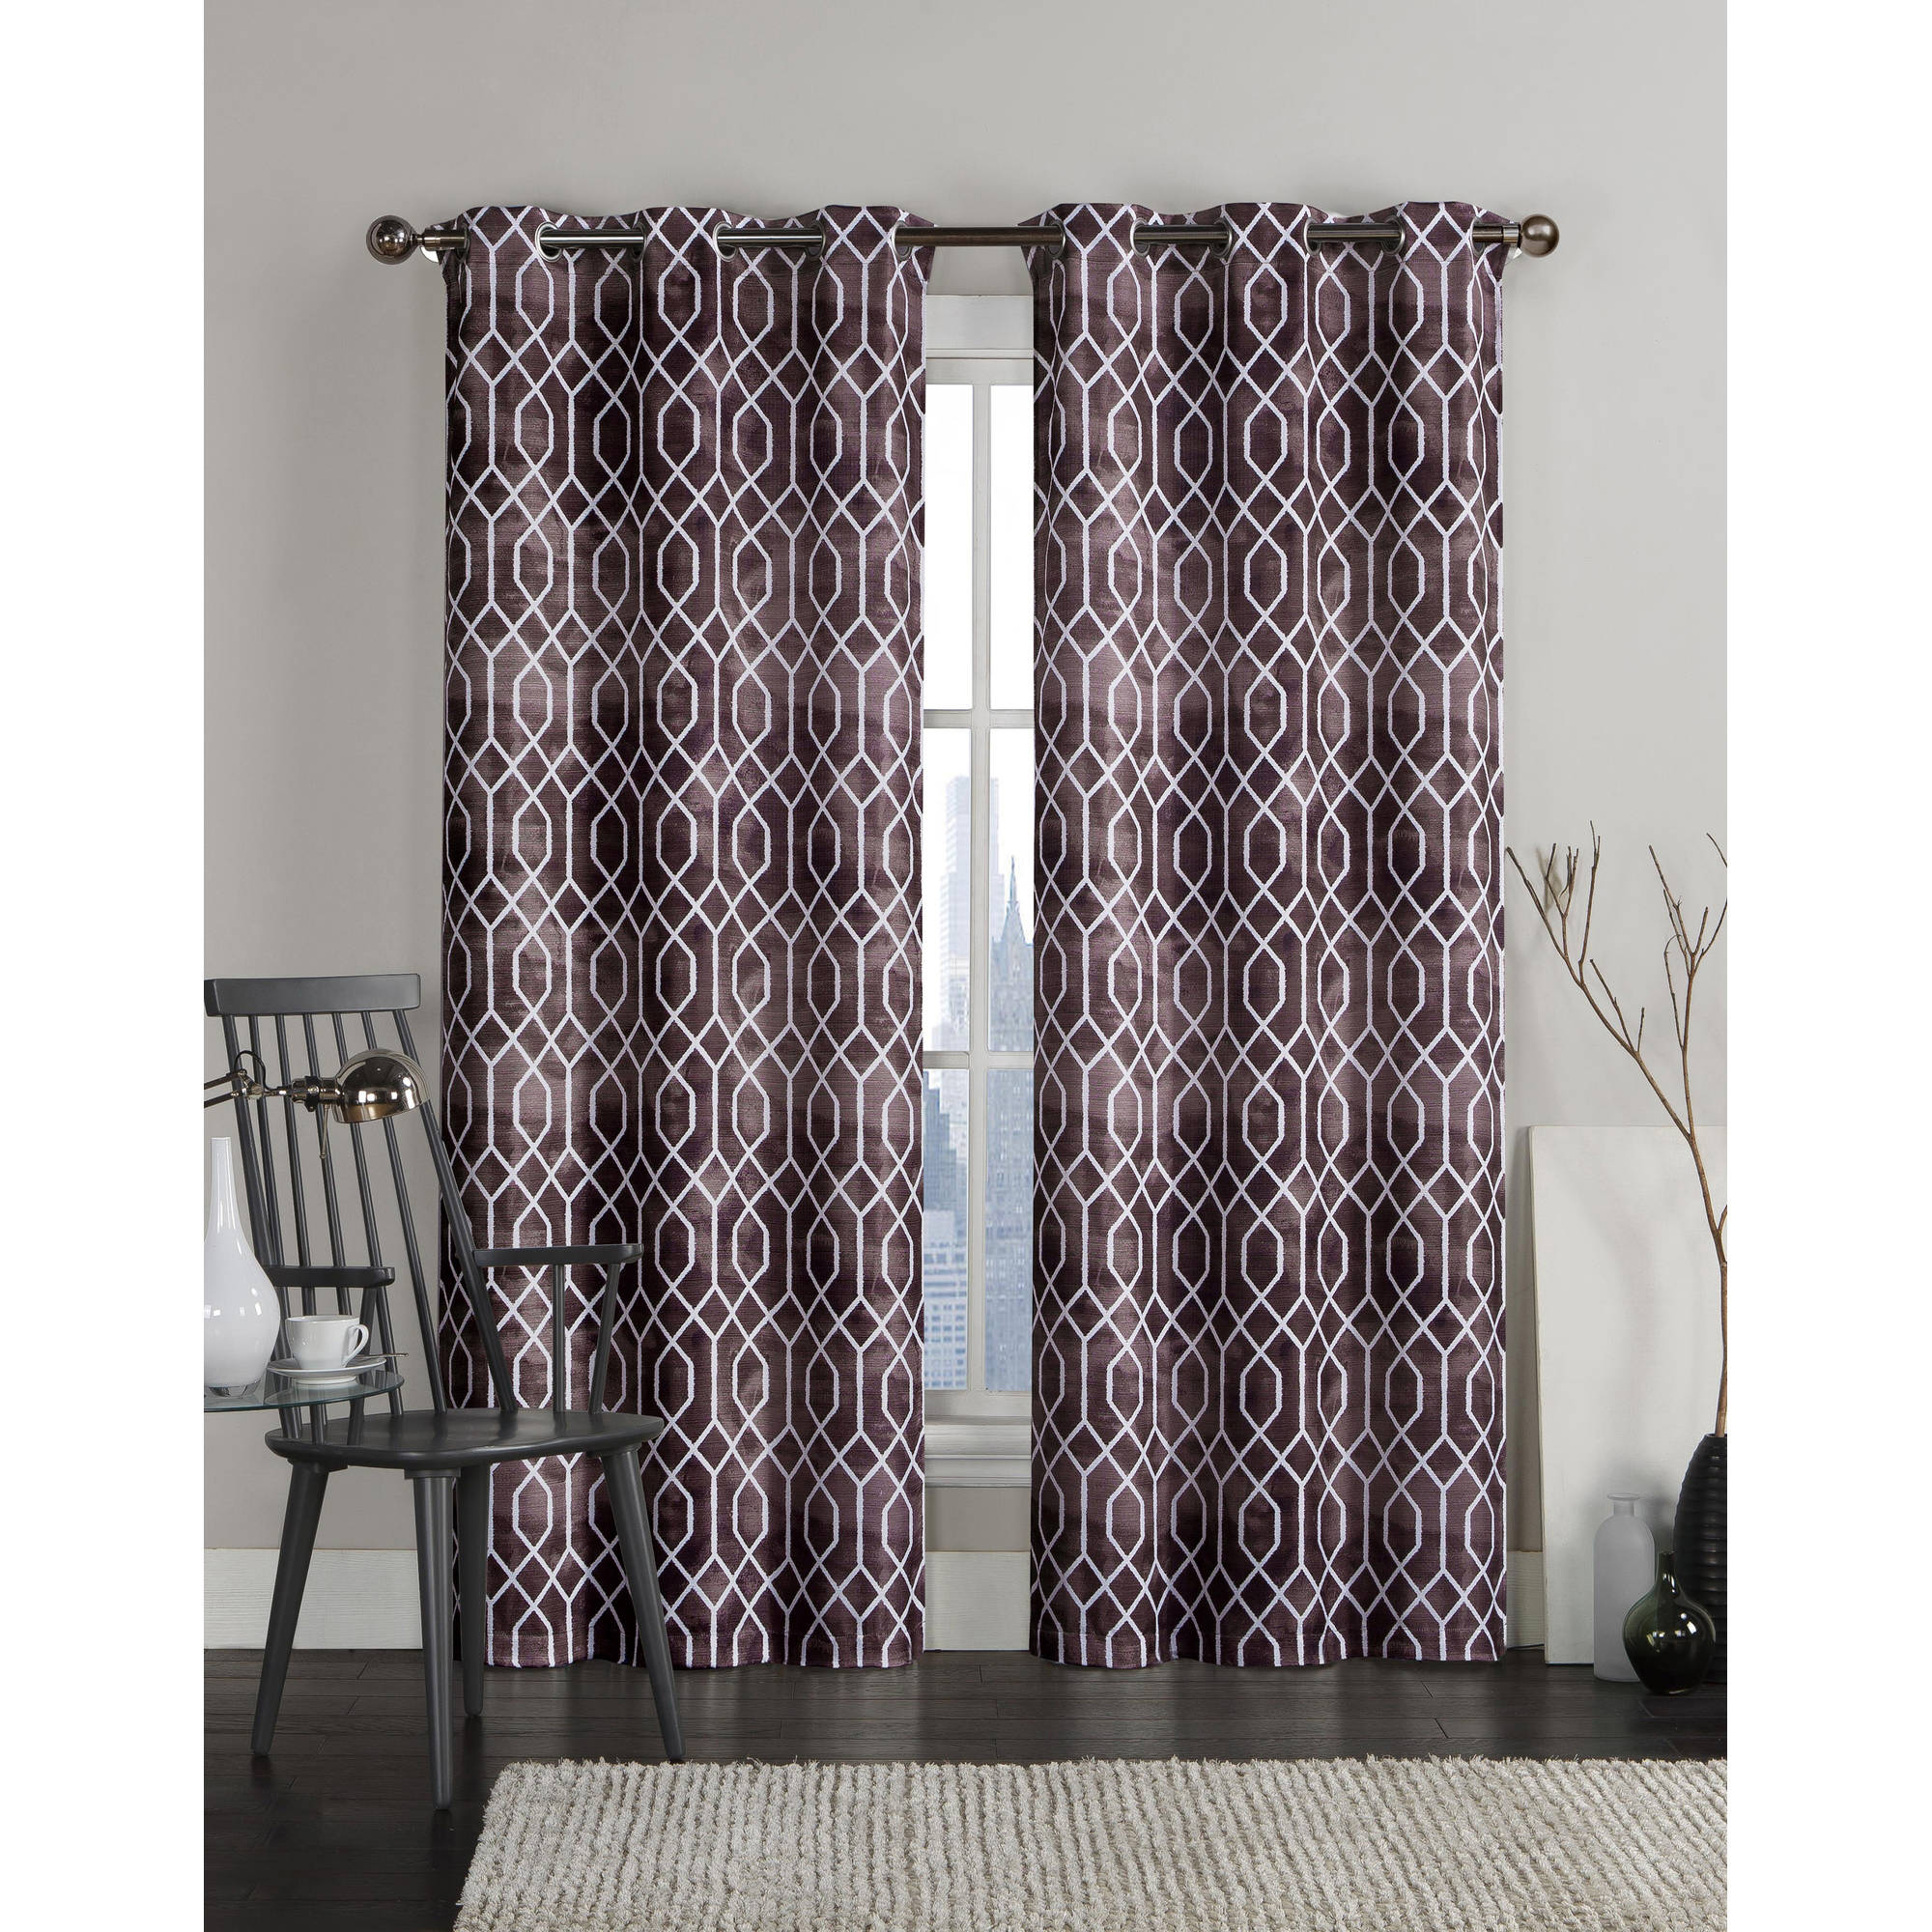 VCNY Home Andreas Geometric Printed Grommet Top Window Curtains, Set of 2, Multiple Sizes Available